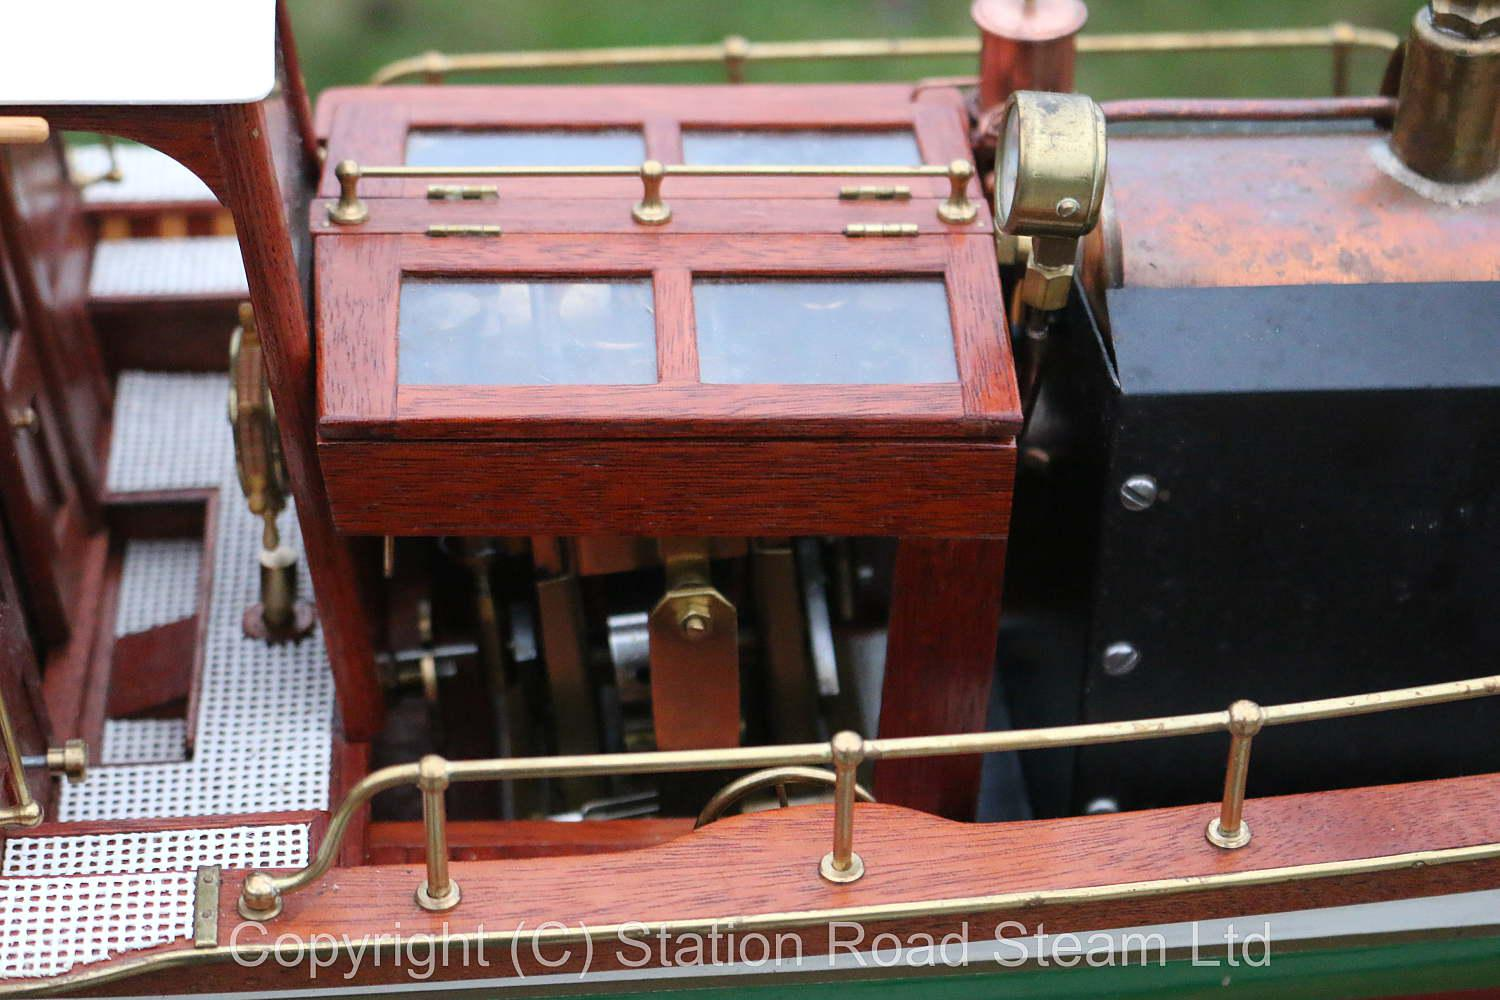 1:12th scale Windermere steam launch